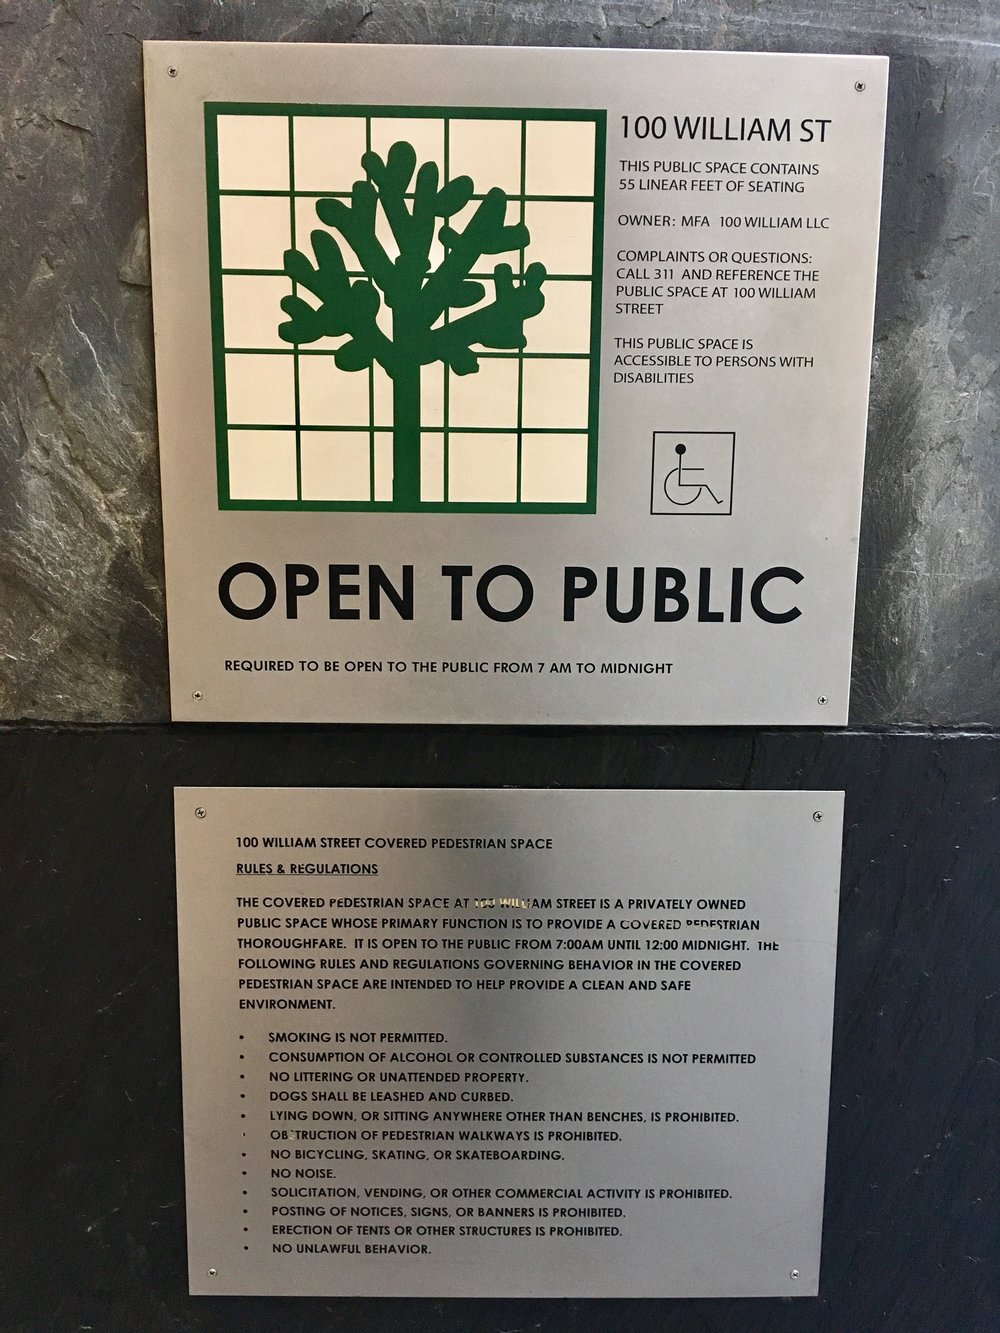 The rules and regulations at 100 William Street